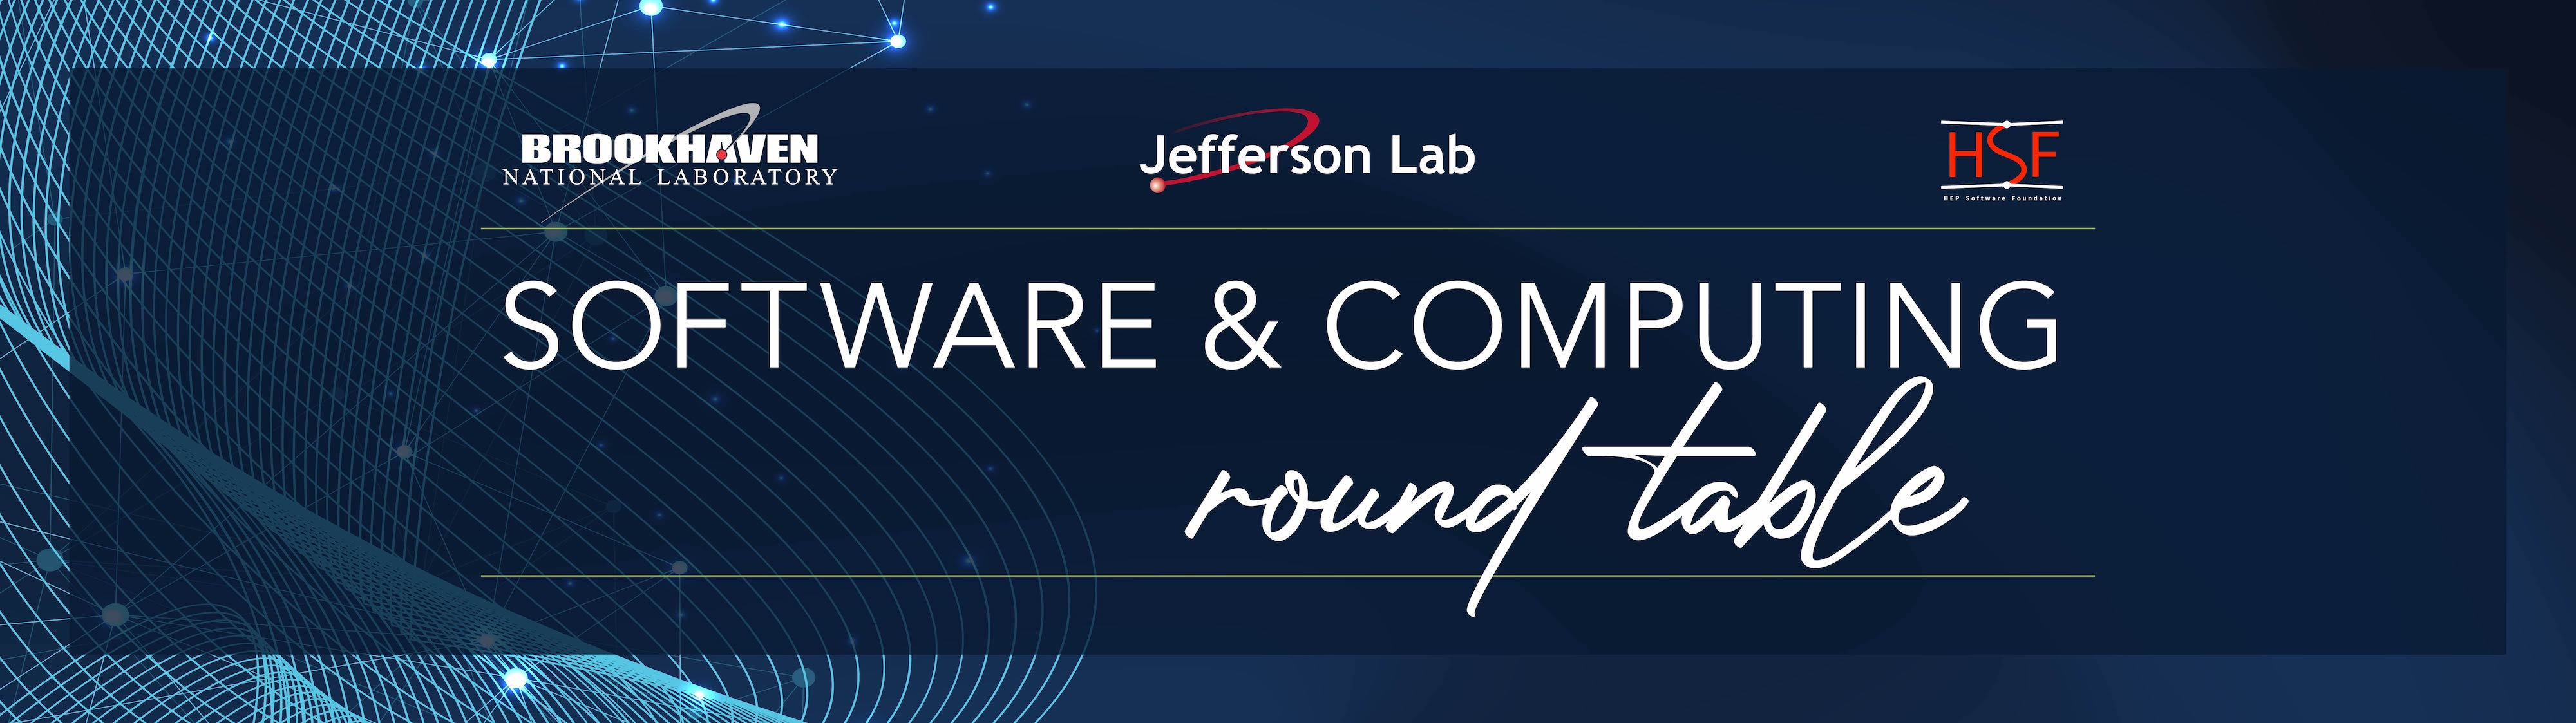 Banner showing the logos of the Software and Computing Round Table, BNL, HSF, and JLab